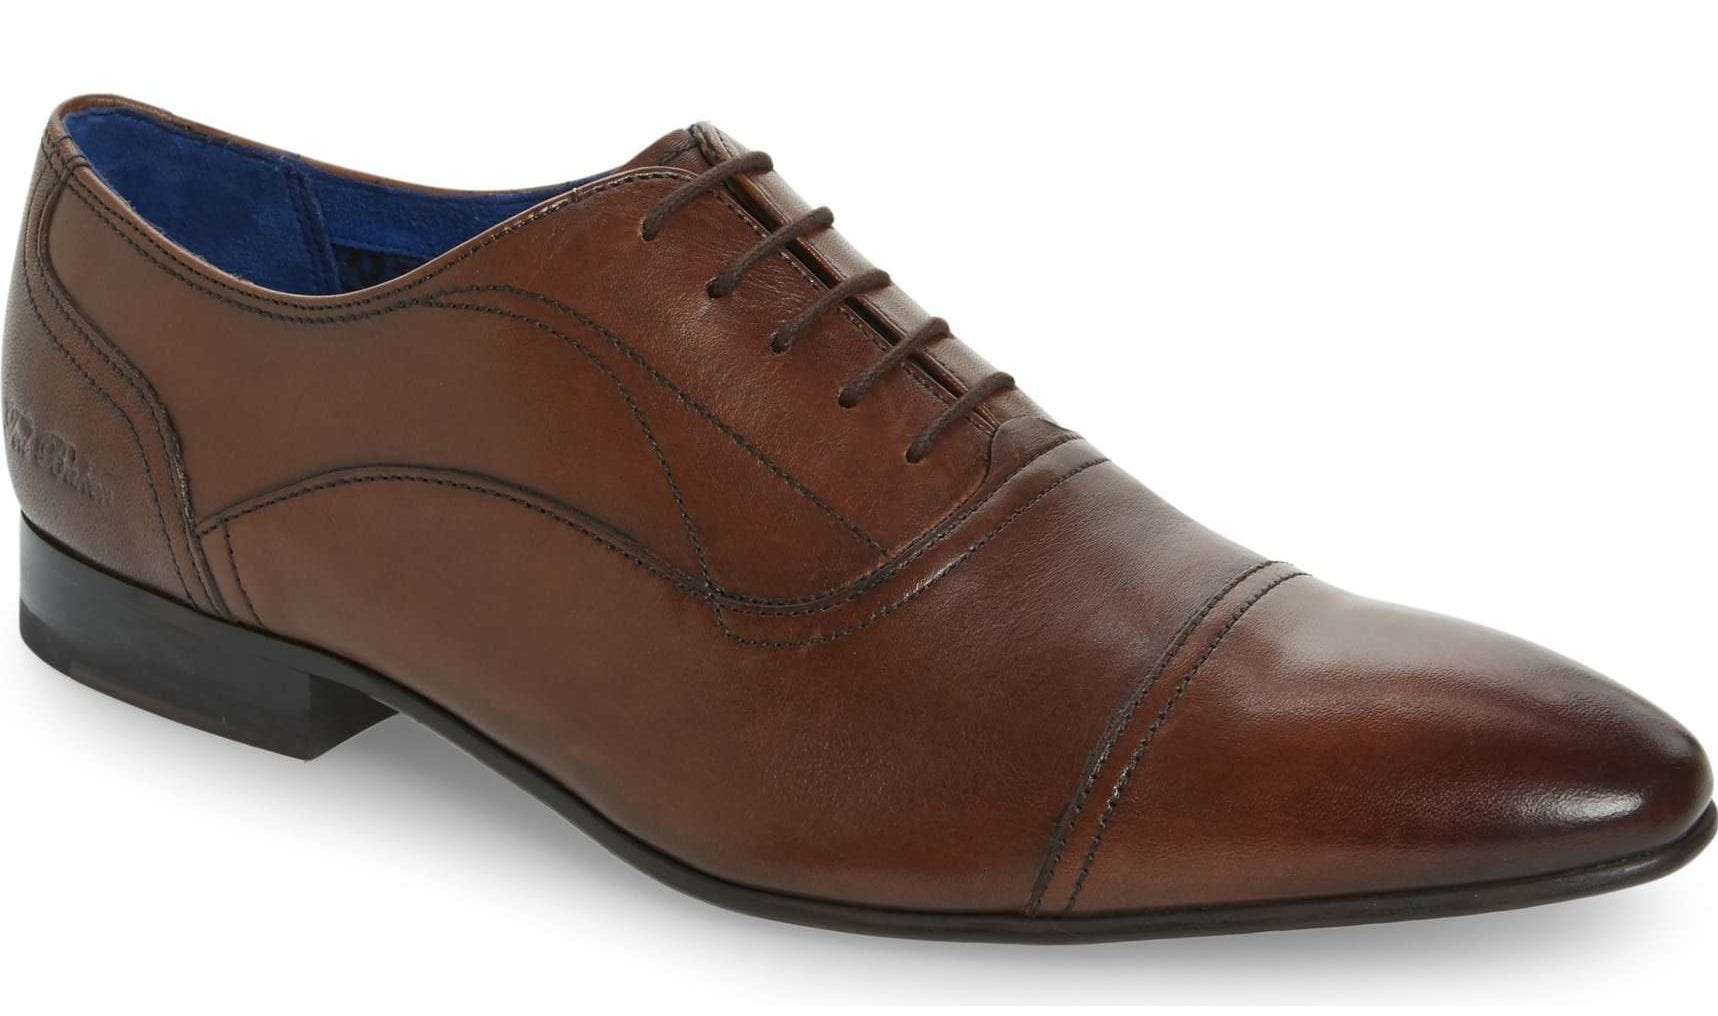 Fall to Winter Dress Shoes for Men 2017: Ted Baker